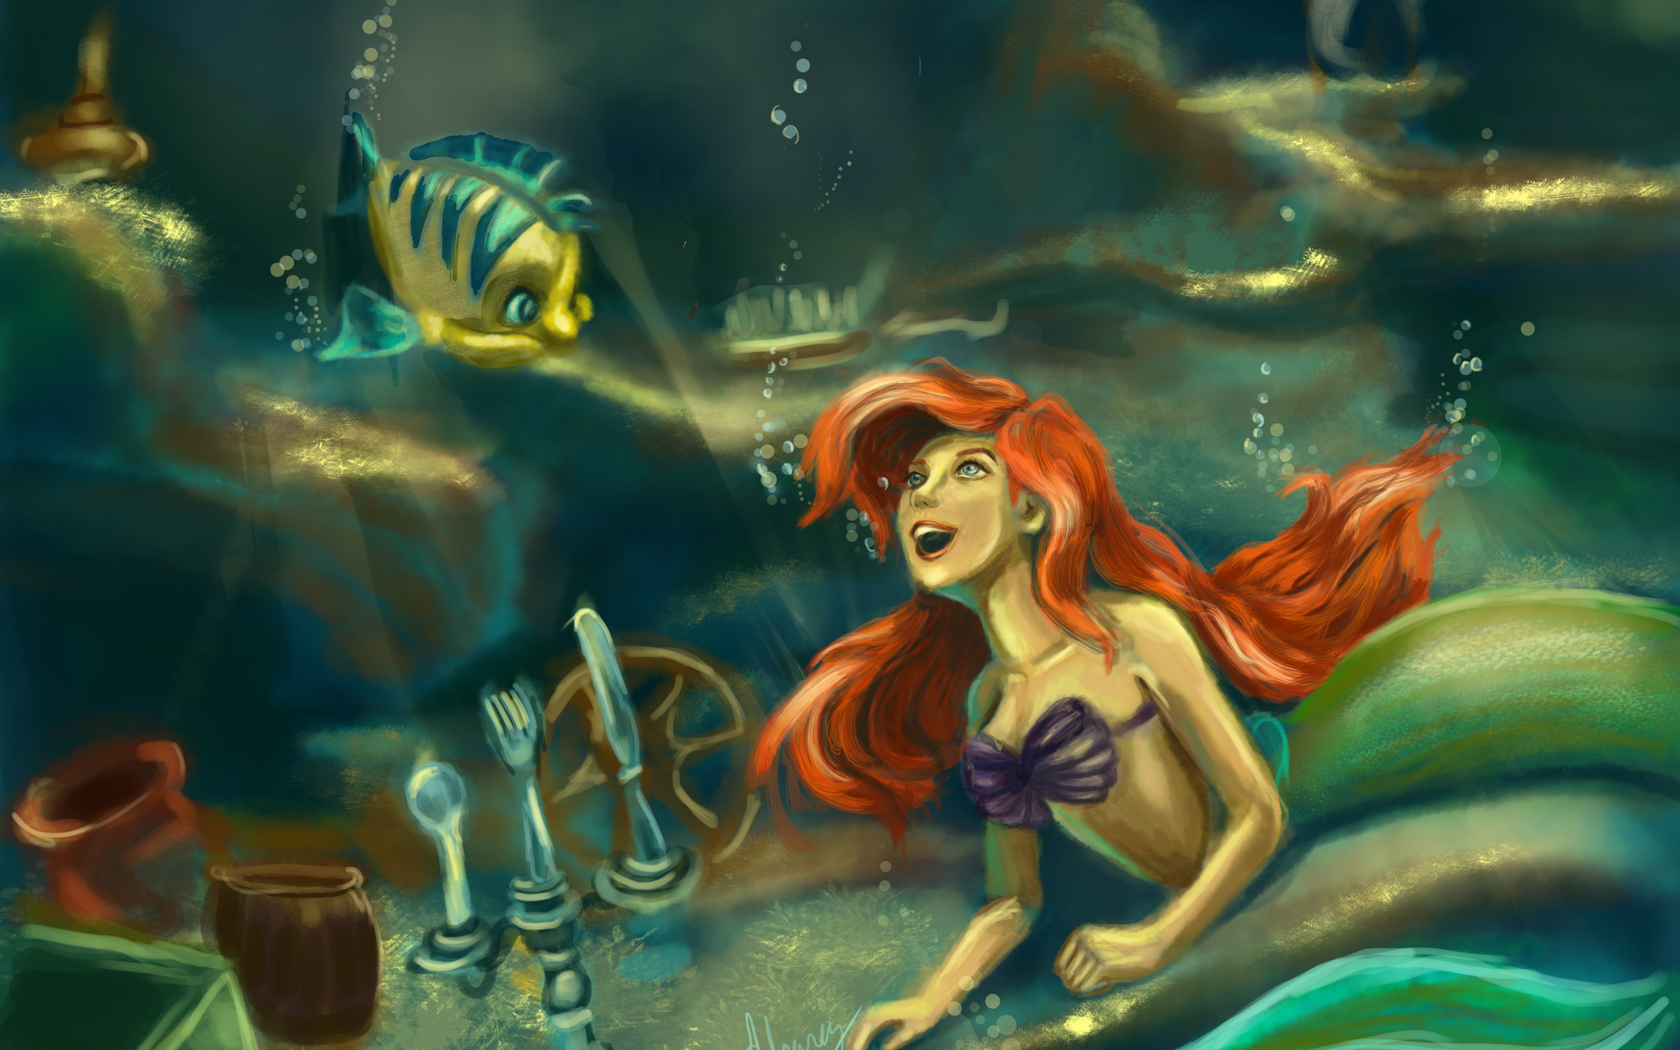 the little mermaid The little mermaid is one of disney's best animated motion pictures it tells the classic hans christian anderson story of a mermaid who wishes she could be human in order to capture the love of a human prince.